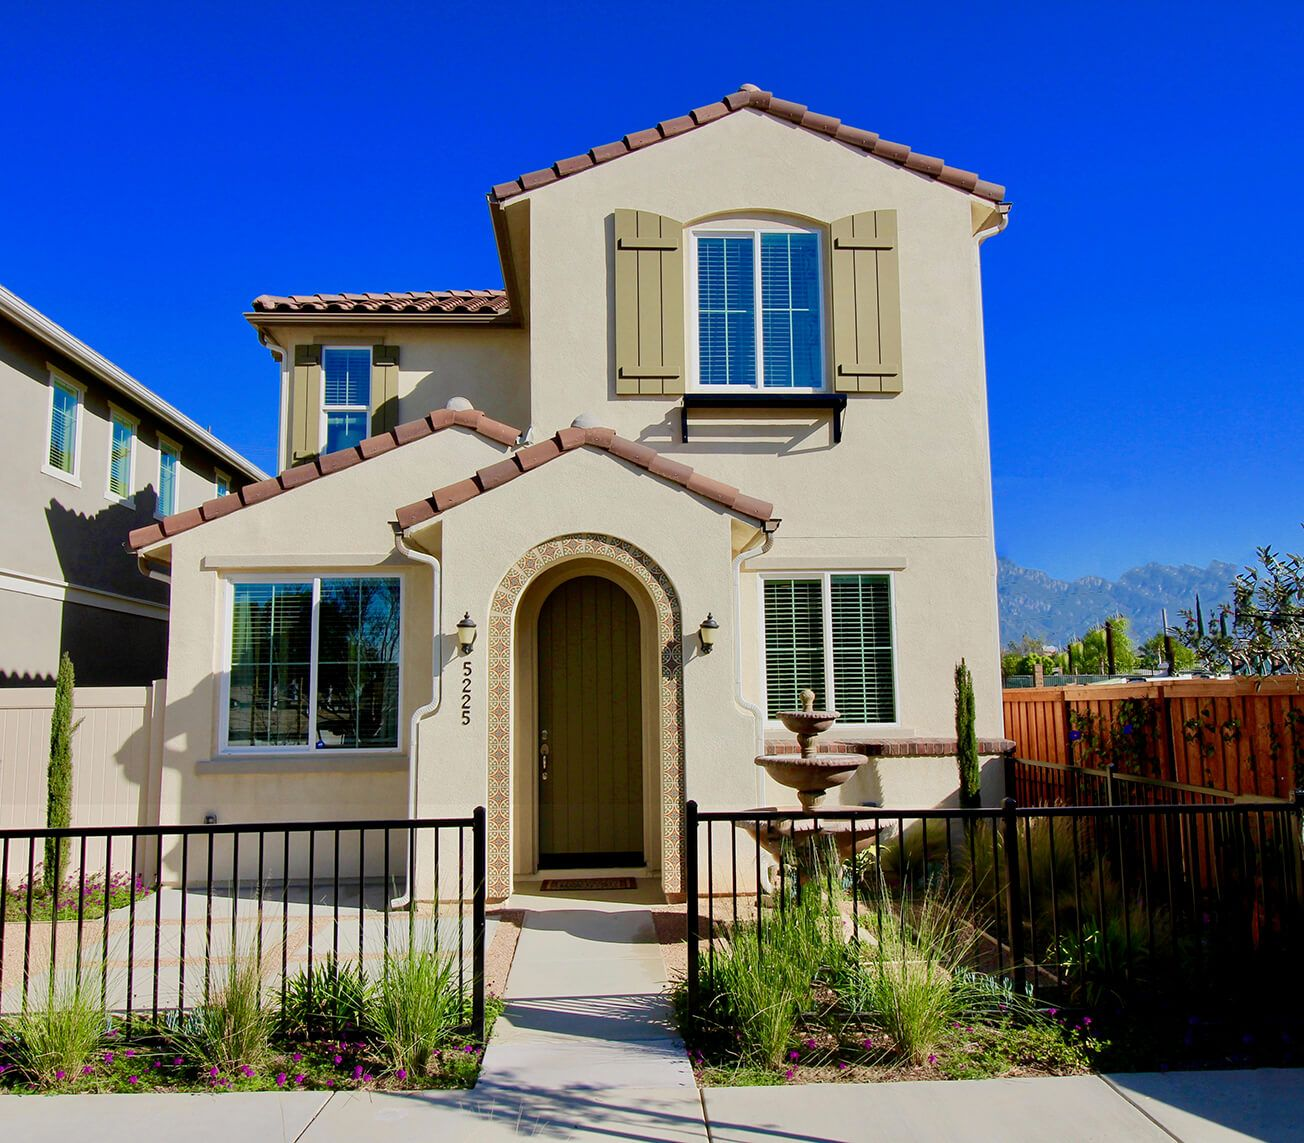 Single Family for Sale at Residence Three 4956 Adera Street Montclair, California 91763 United States